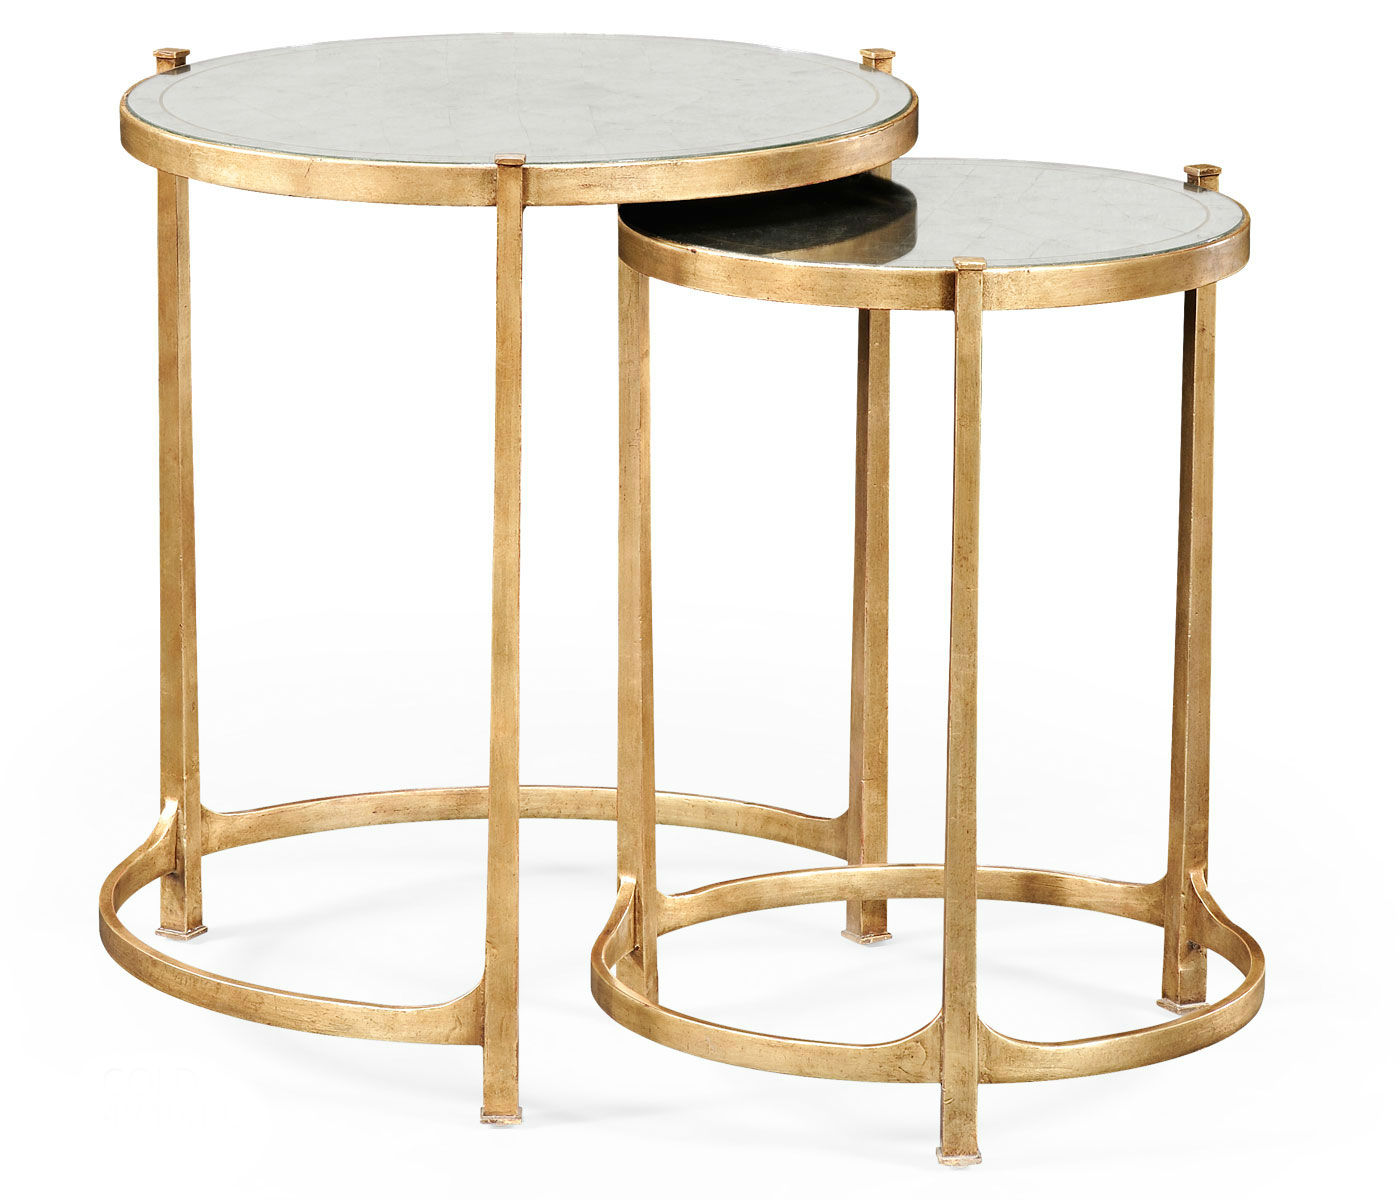 nesting tables gold side table accent console elegant tall antiqued mirrored gilt partner end coffee available hospitality retro couch small metal ikea childrens furniture storage